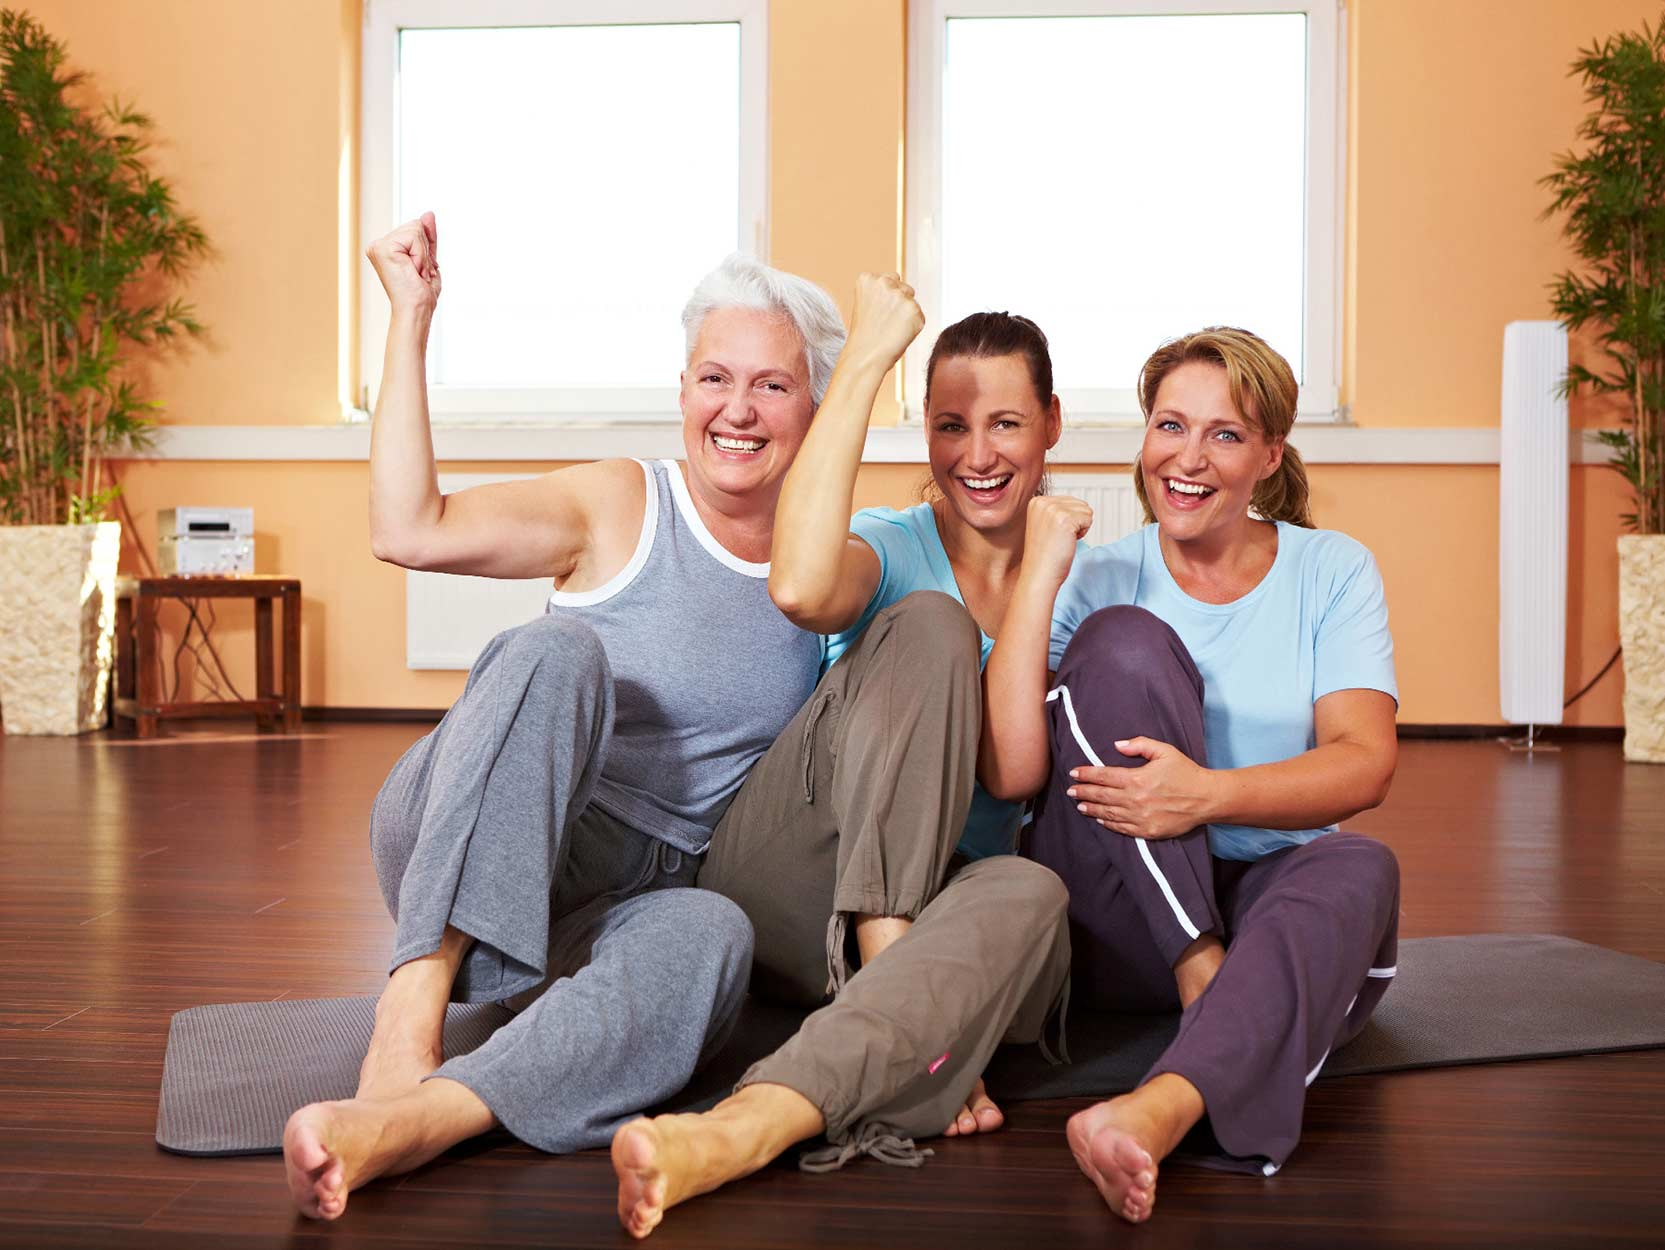 The Elderly Benefit Greatly from Regular Exercise